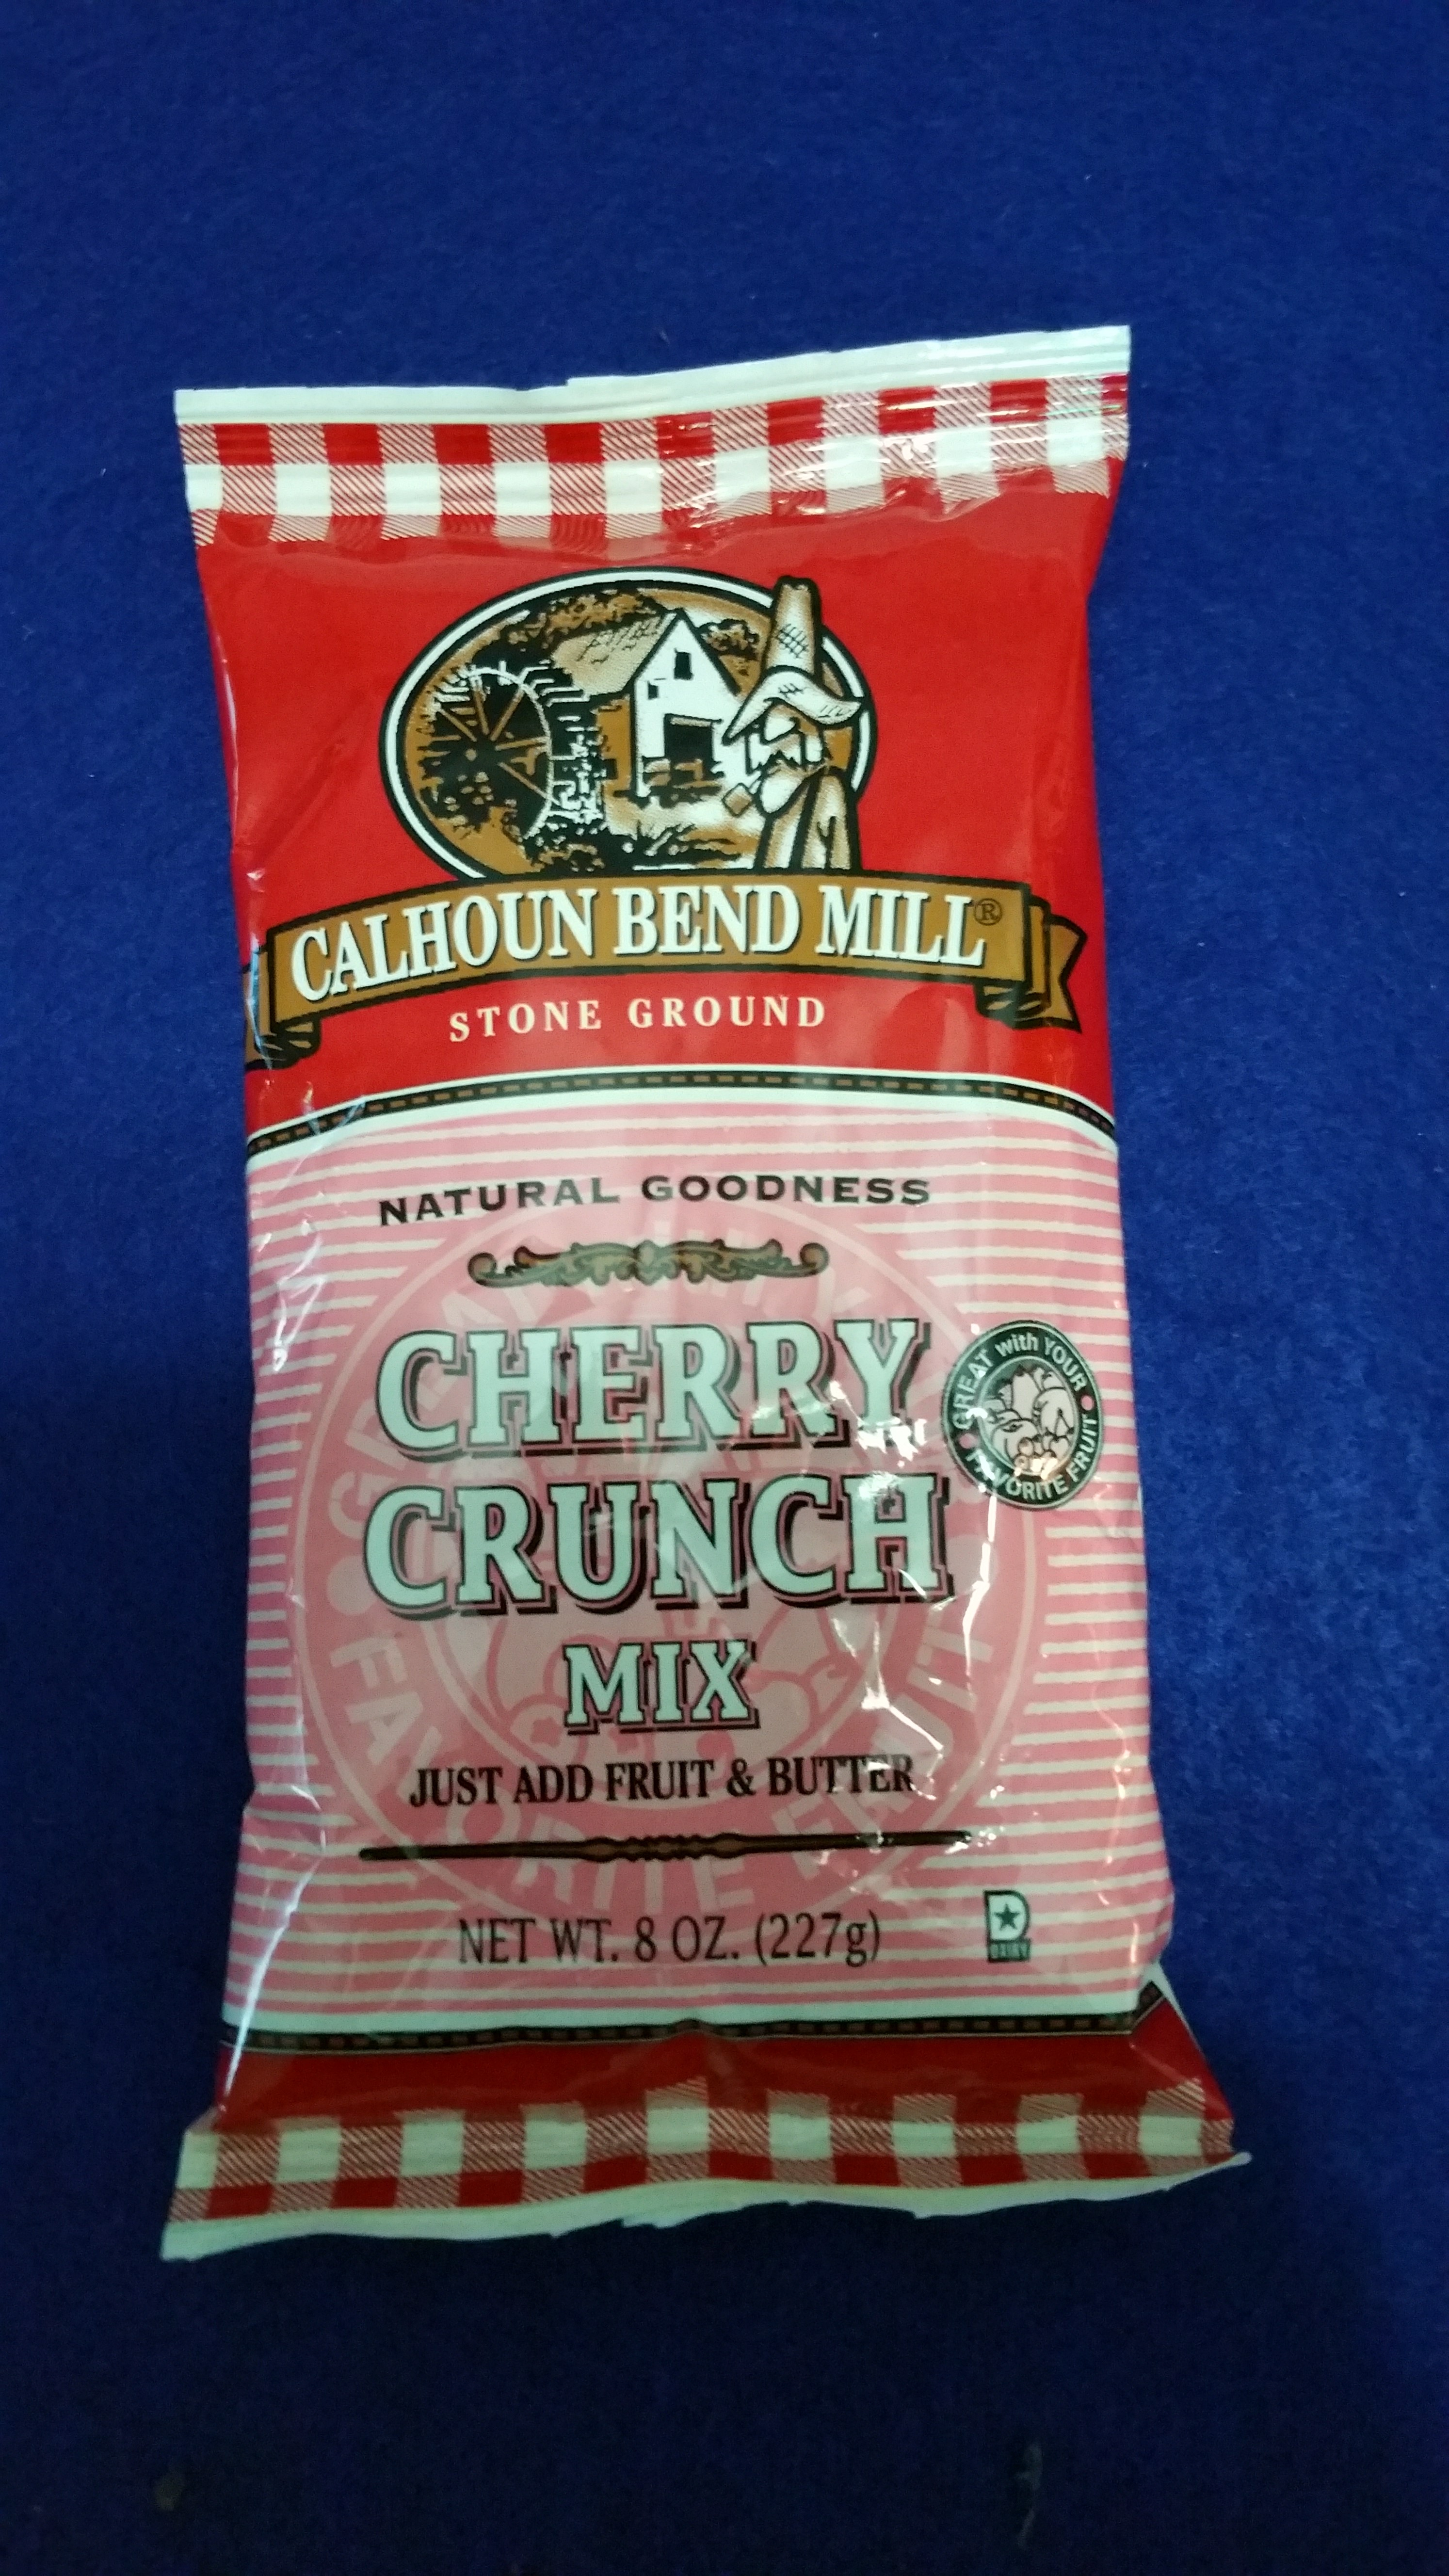 Cherry Crunch Mix - Calhoun Bend Mill